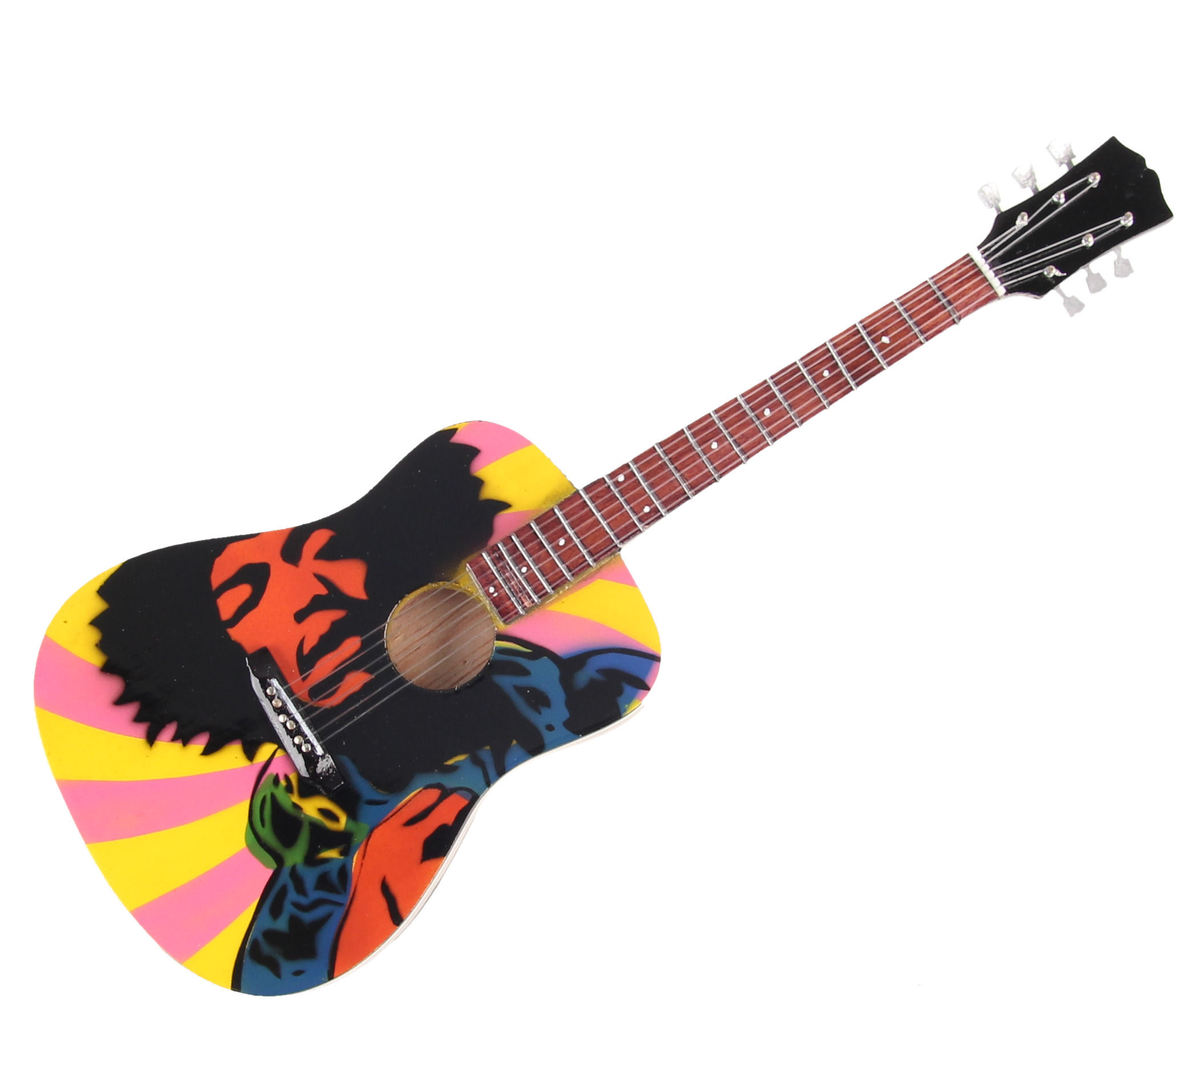 kytara Jimmi Hendrix - Acoustic Tribute - Black - MGT-2820